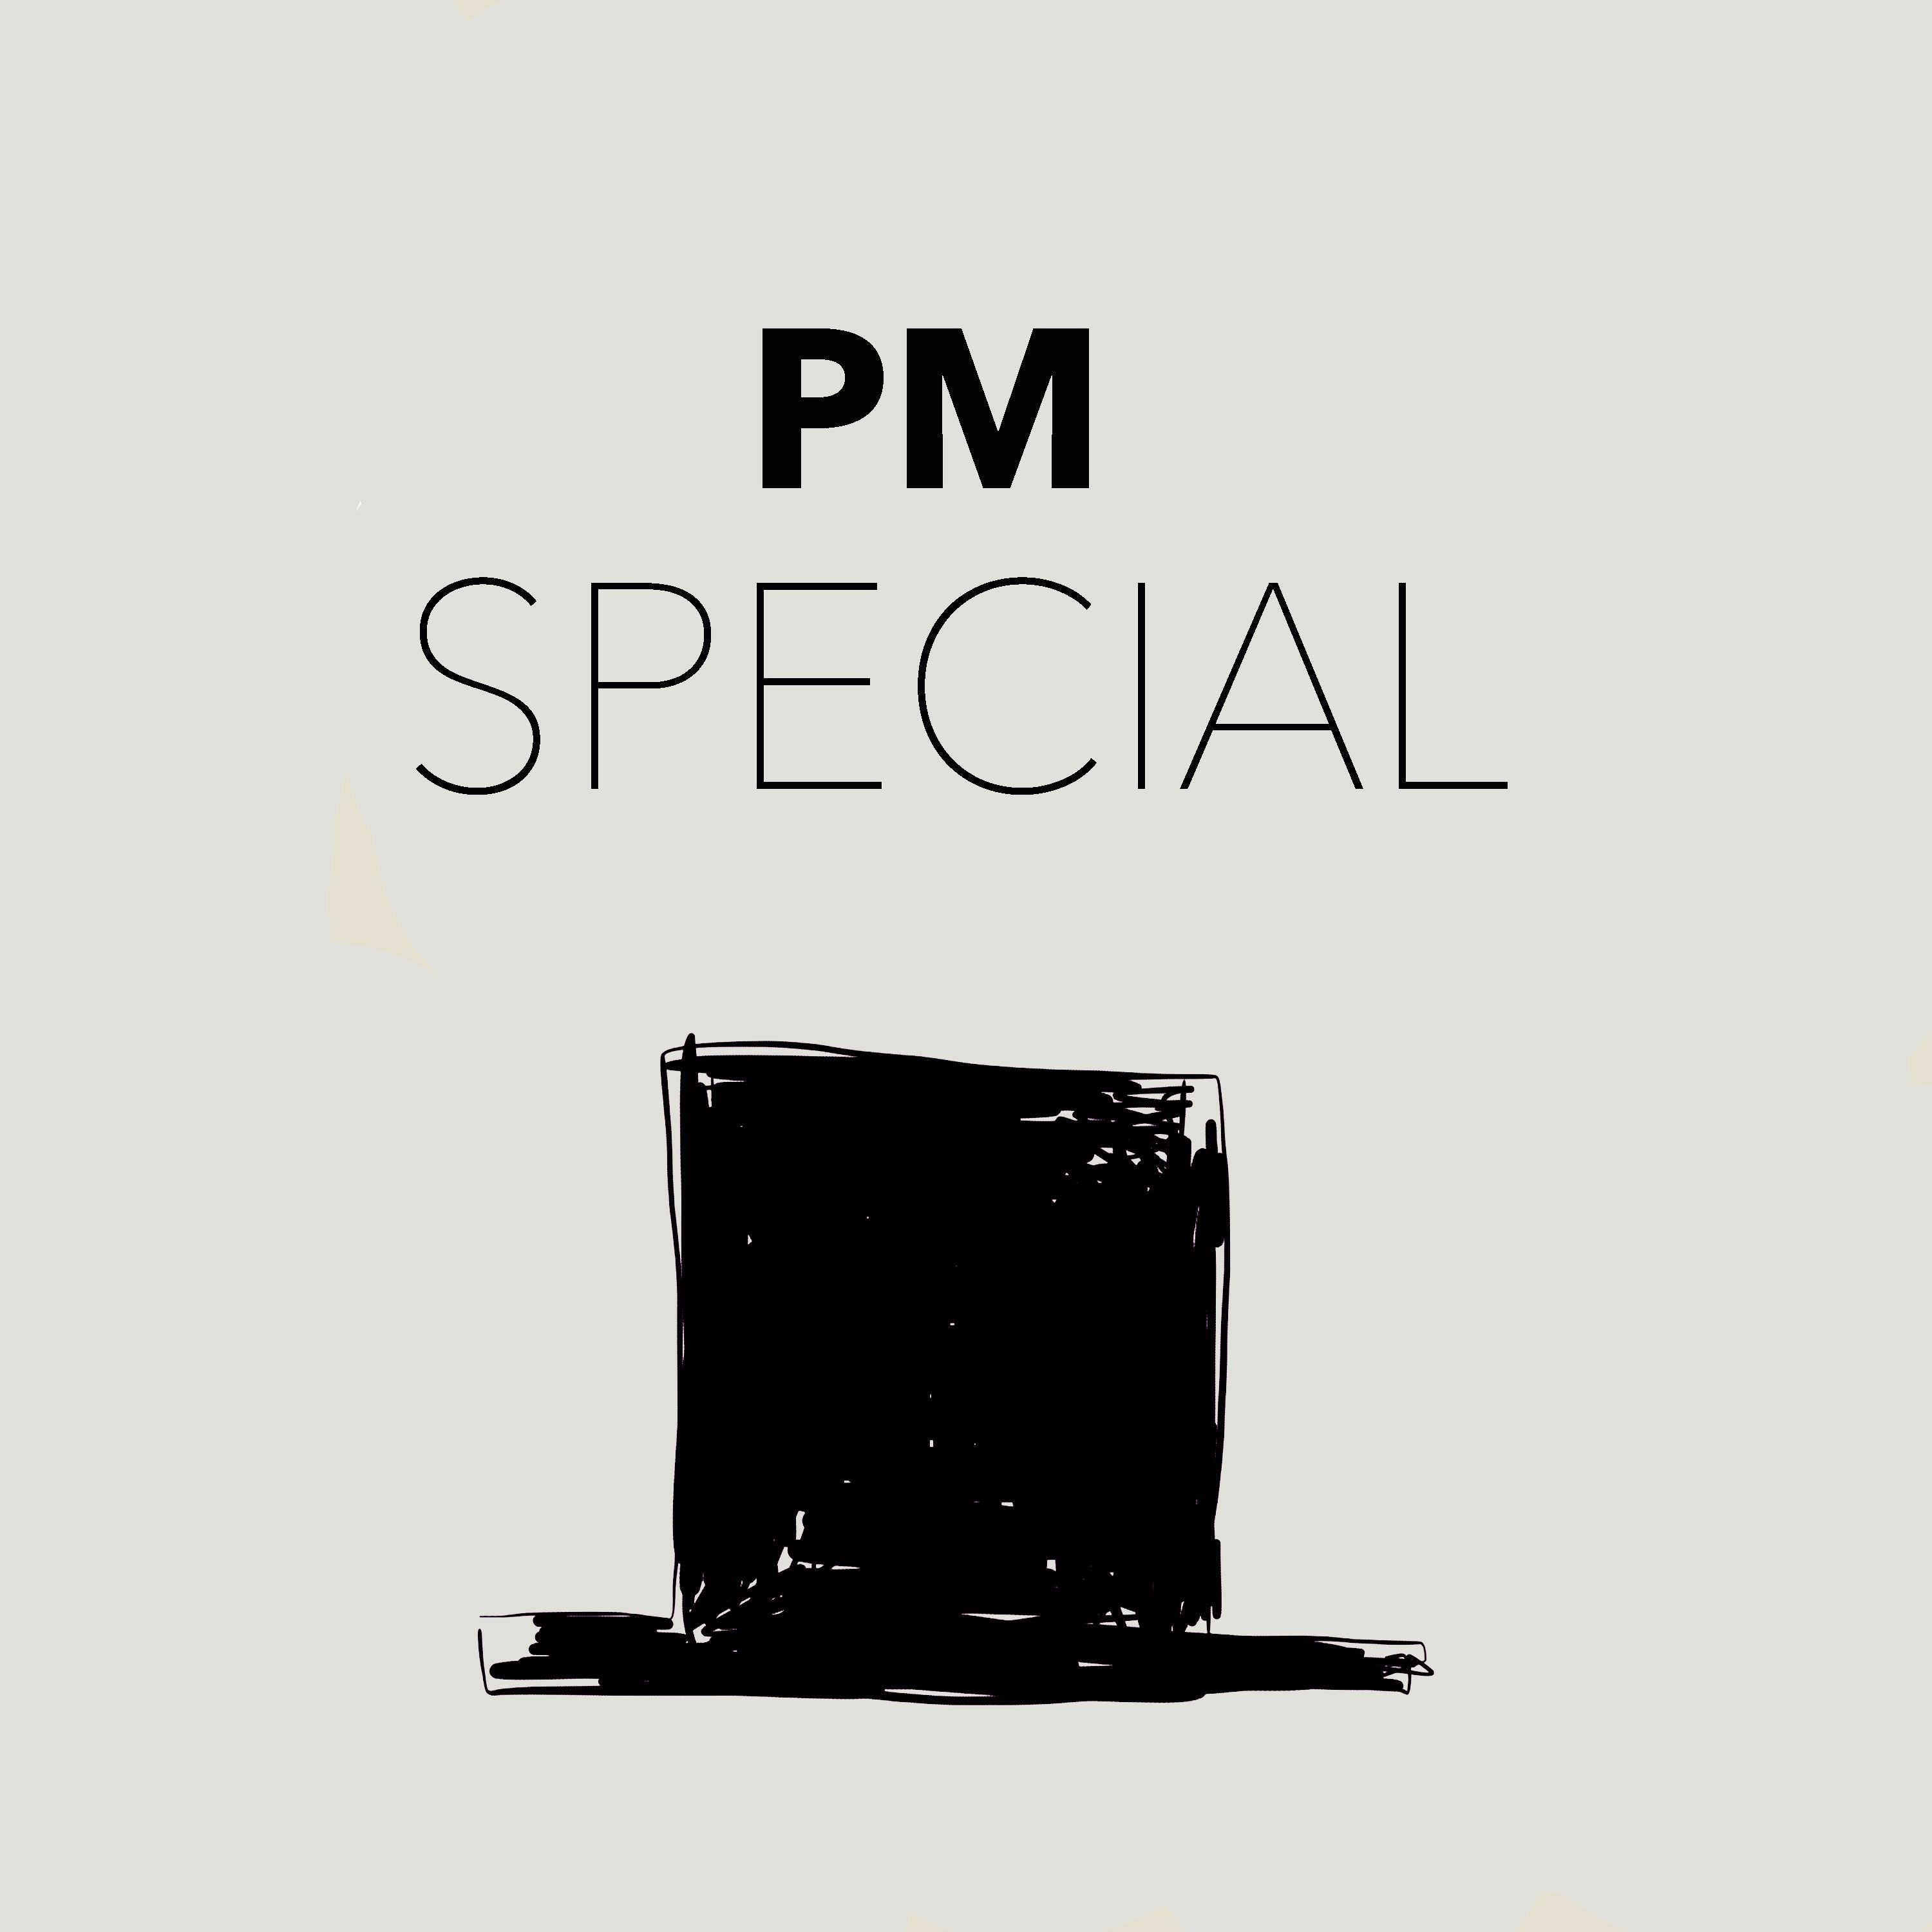 PM SPECIAL -  A walk in the nuclear landscape at CERN